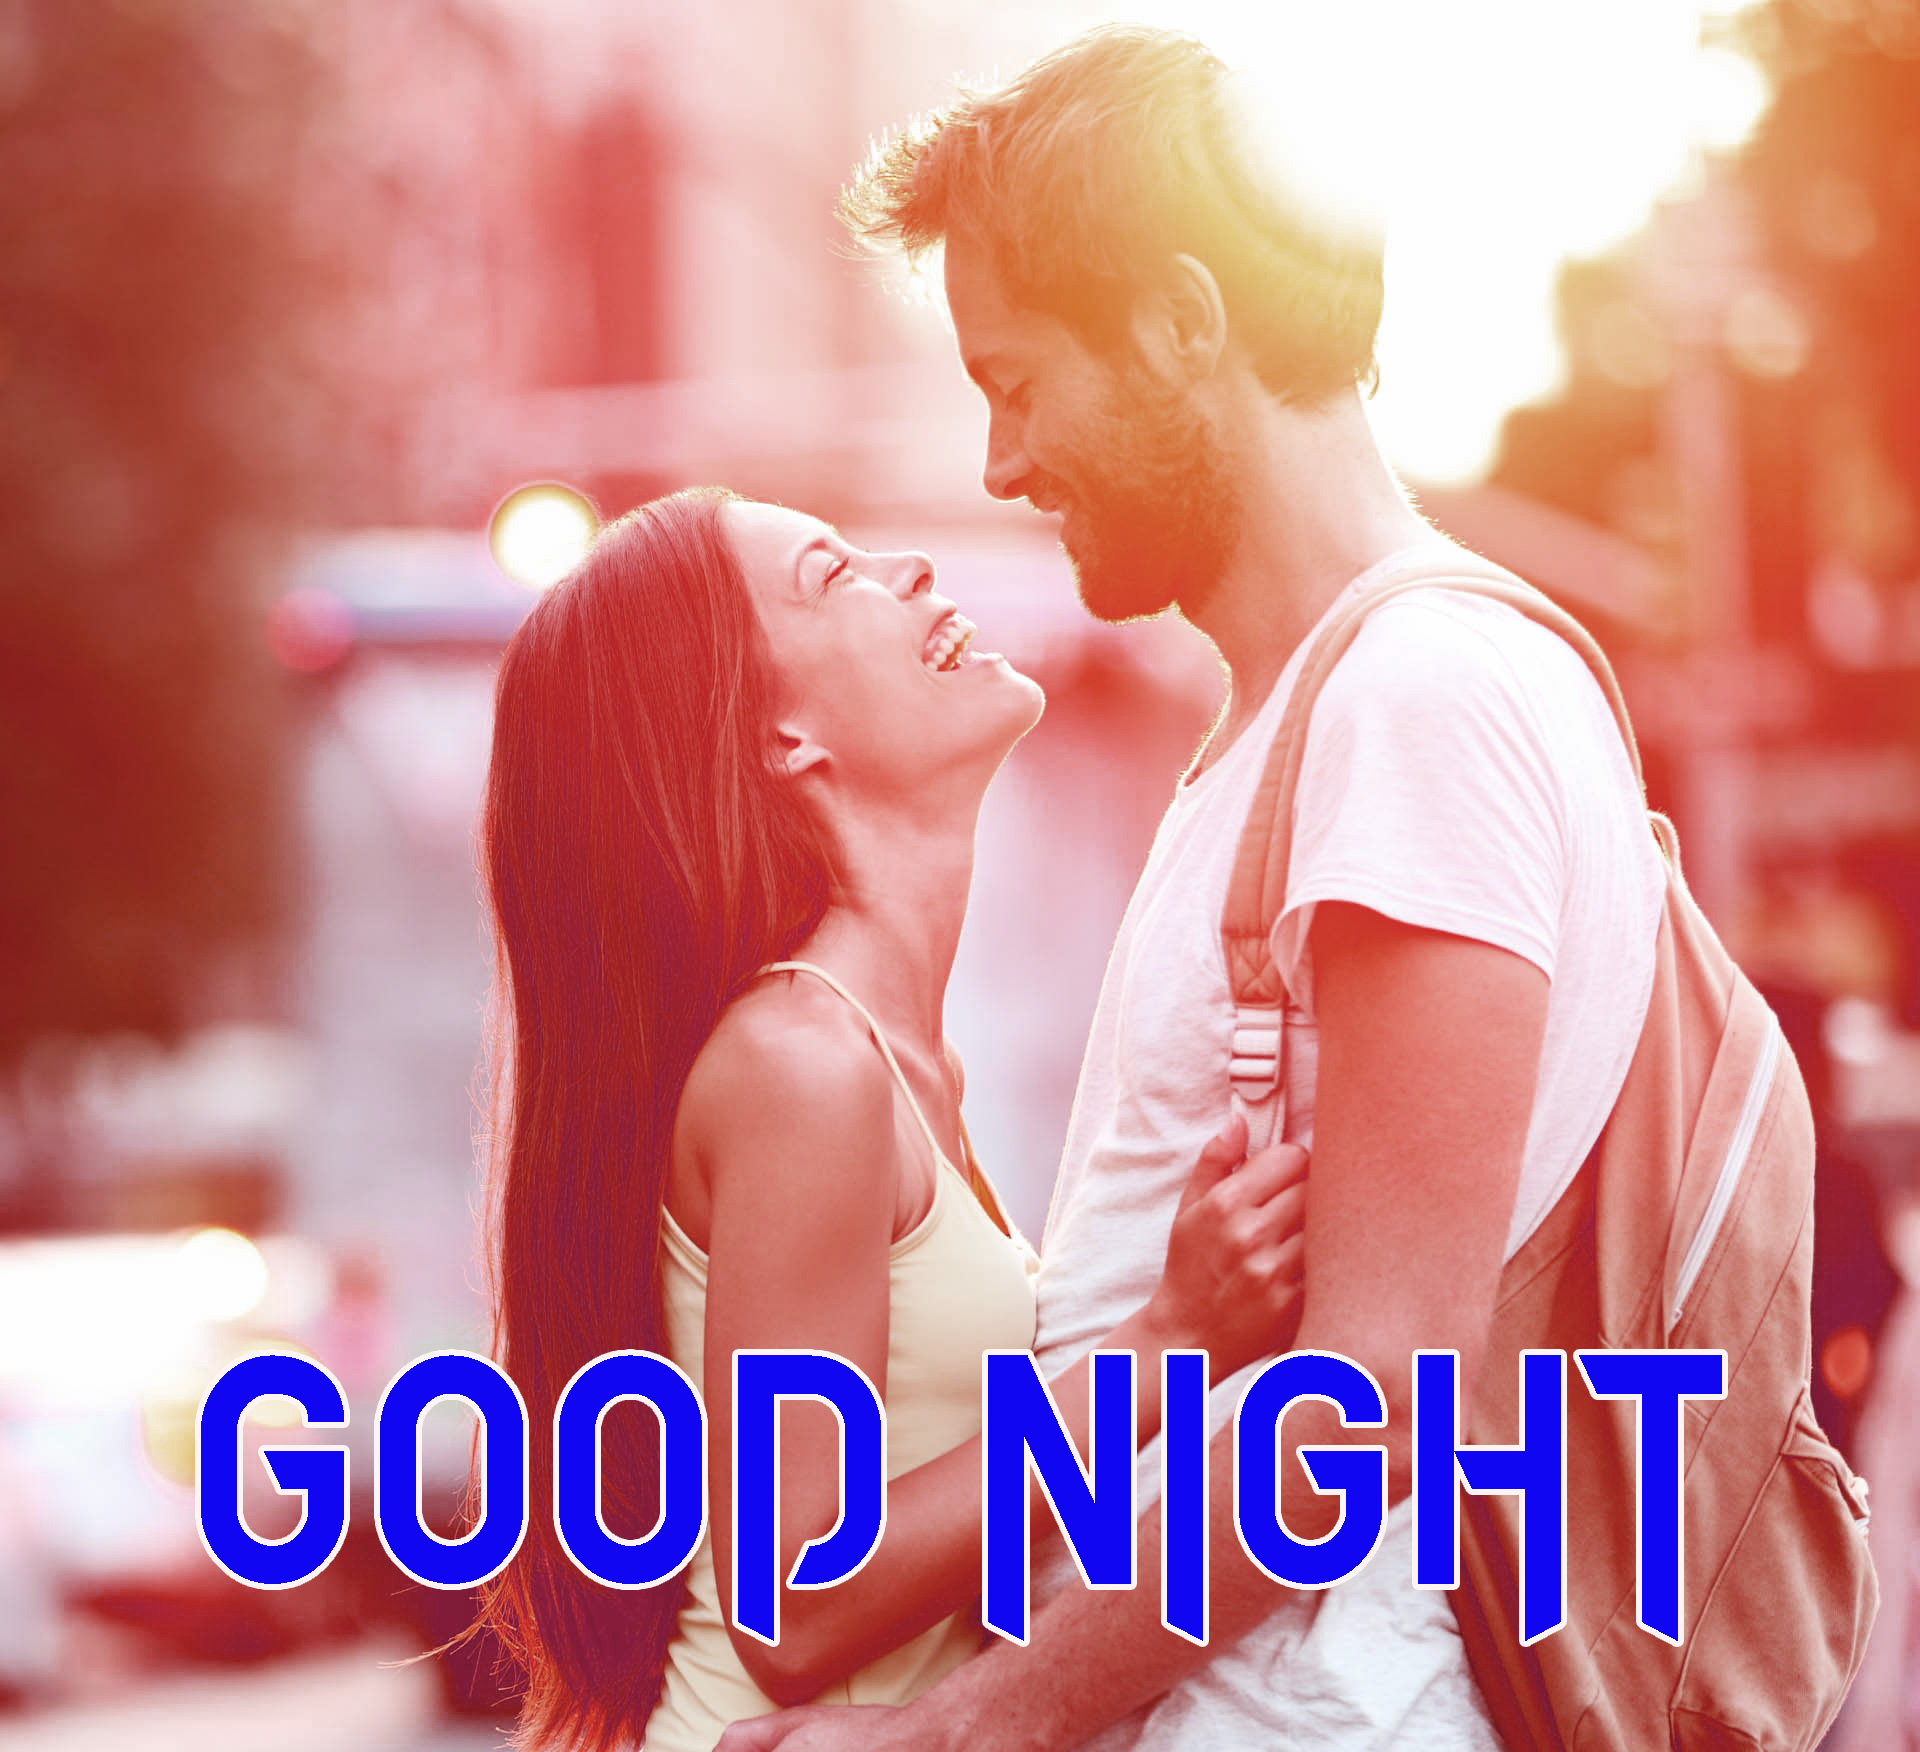 BOYFRIEND & GIRLFRIEND LOVER GOOD NIGHT IMAGES PHOTO WALLPAPER FREE HD